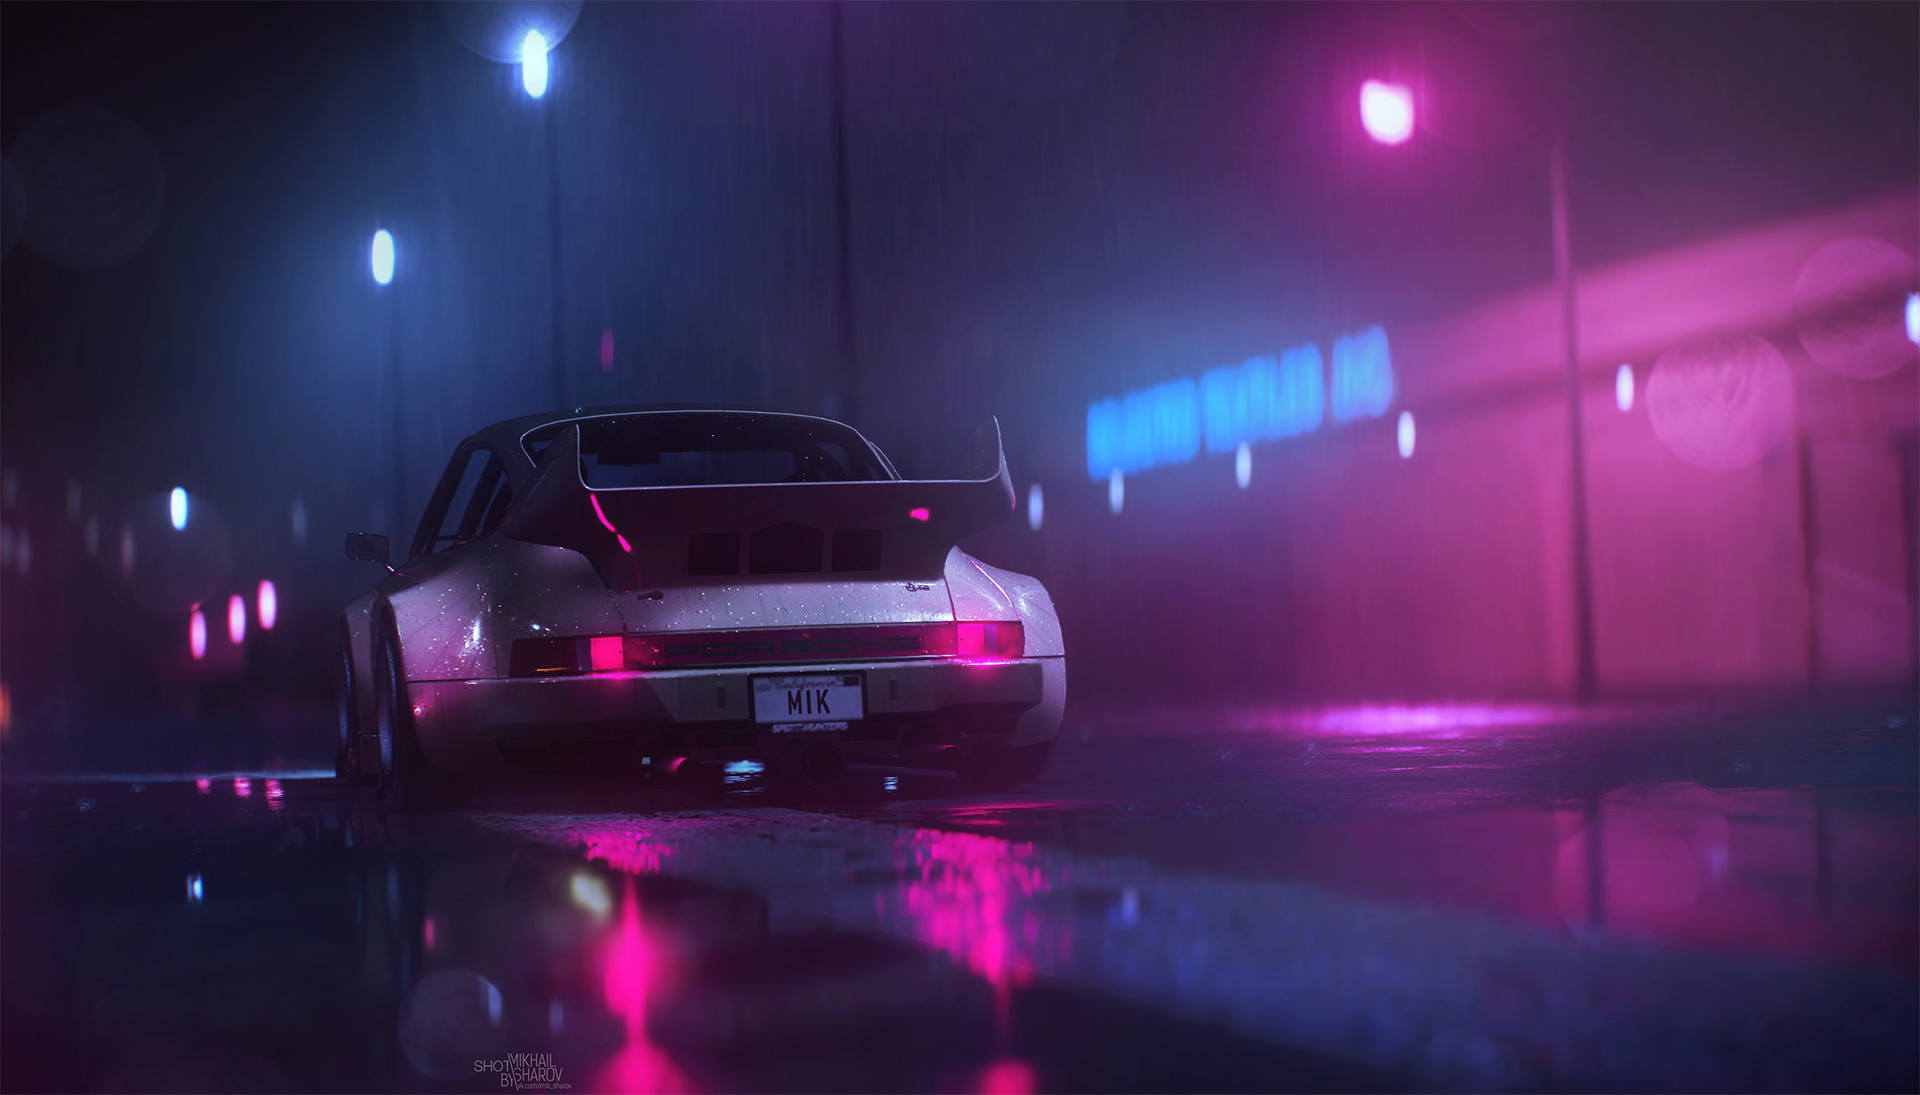 Some of the best new RetrowaveSynthwave wallpapers and artwork 1920x1095